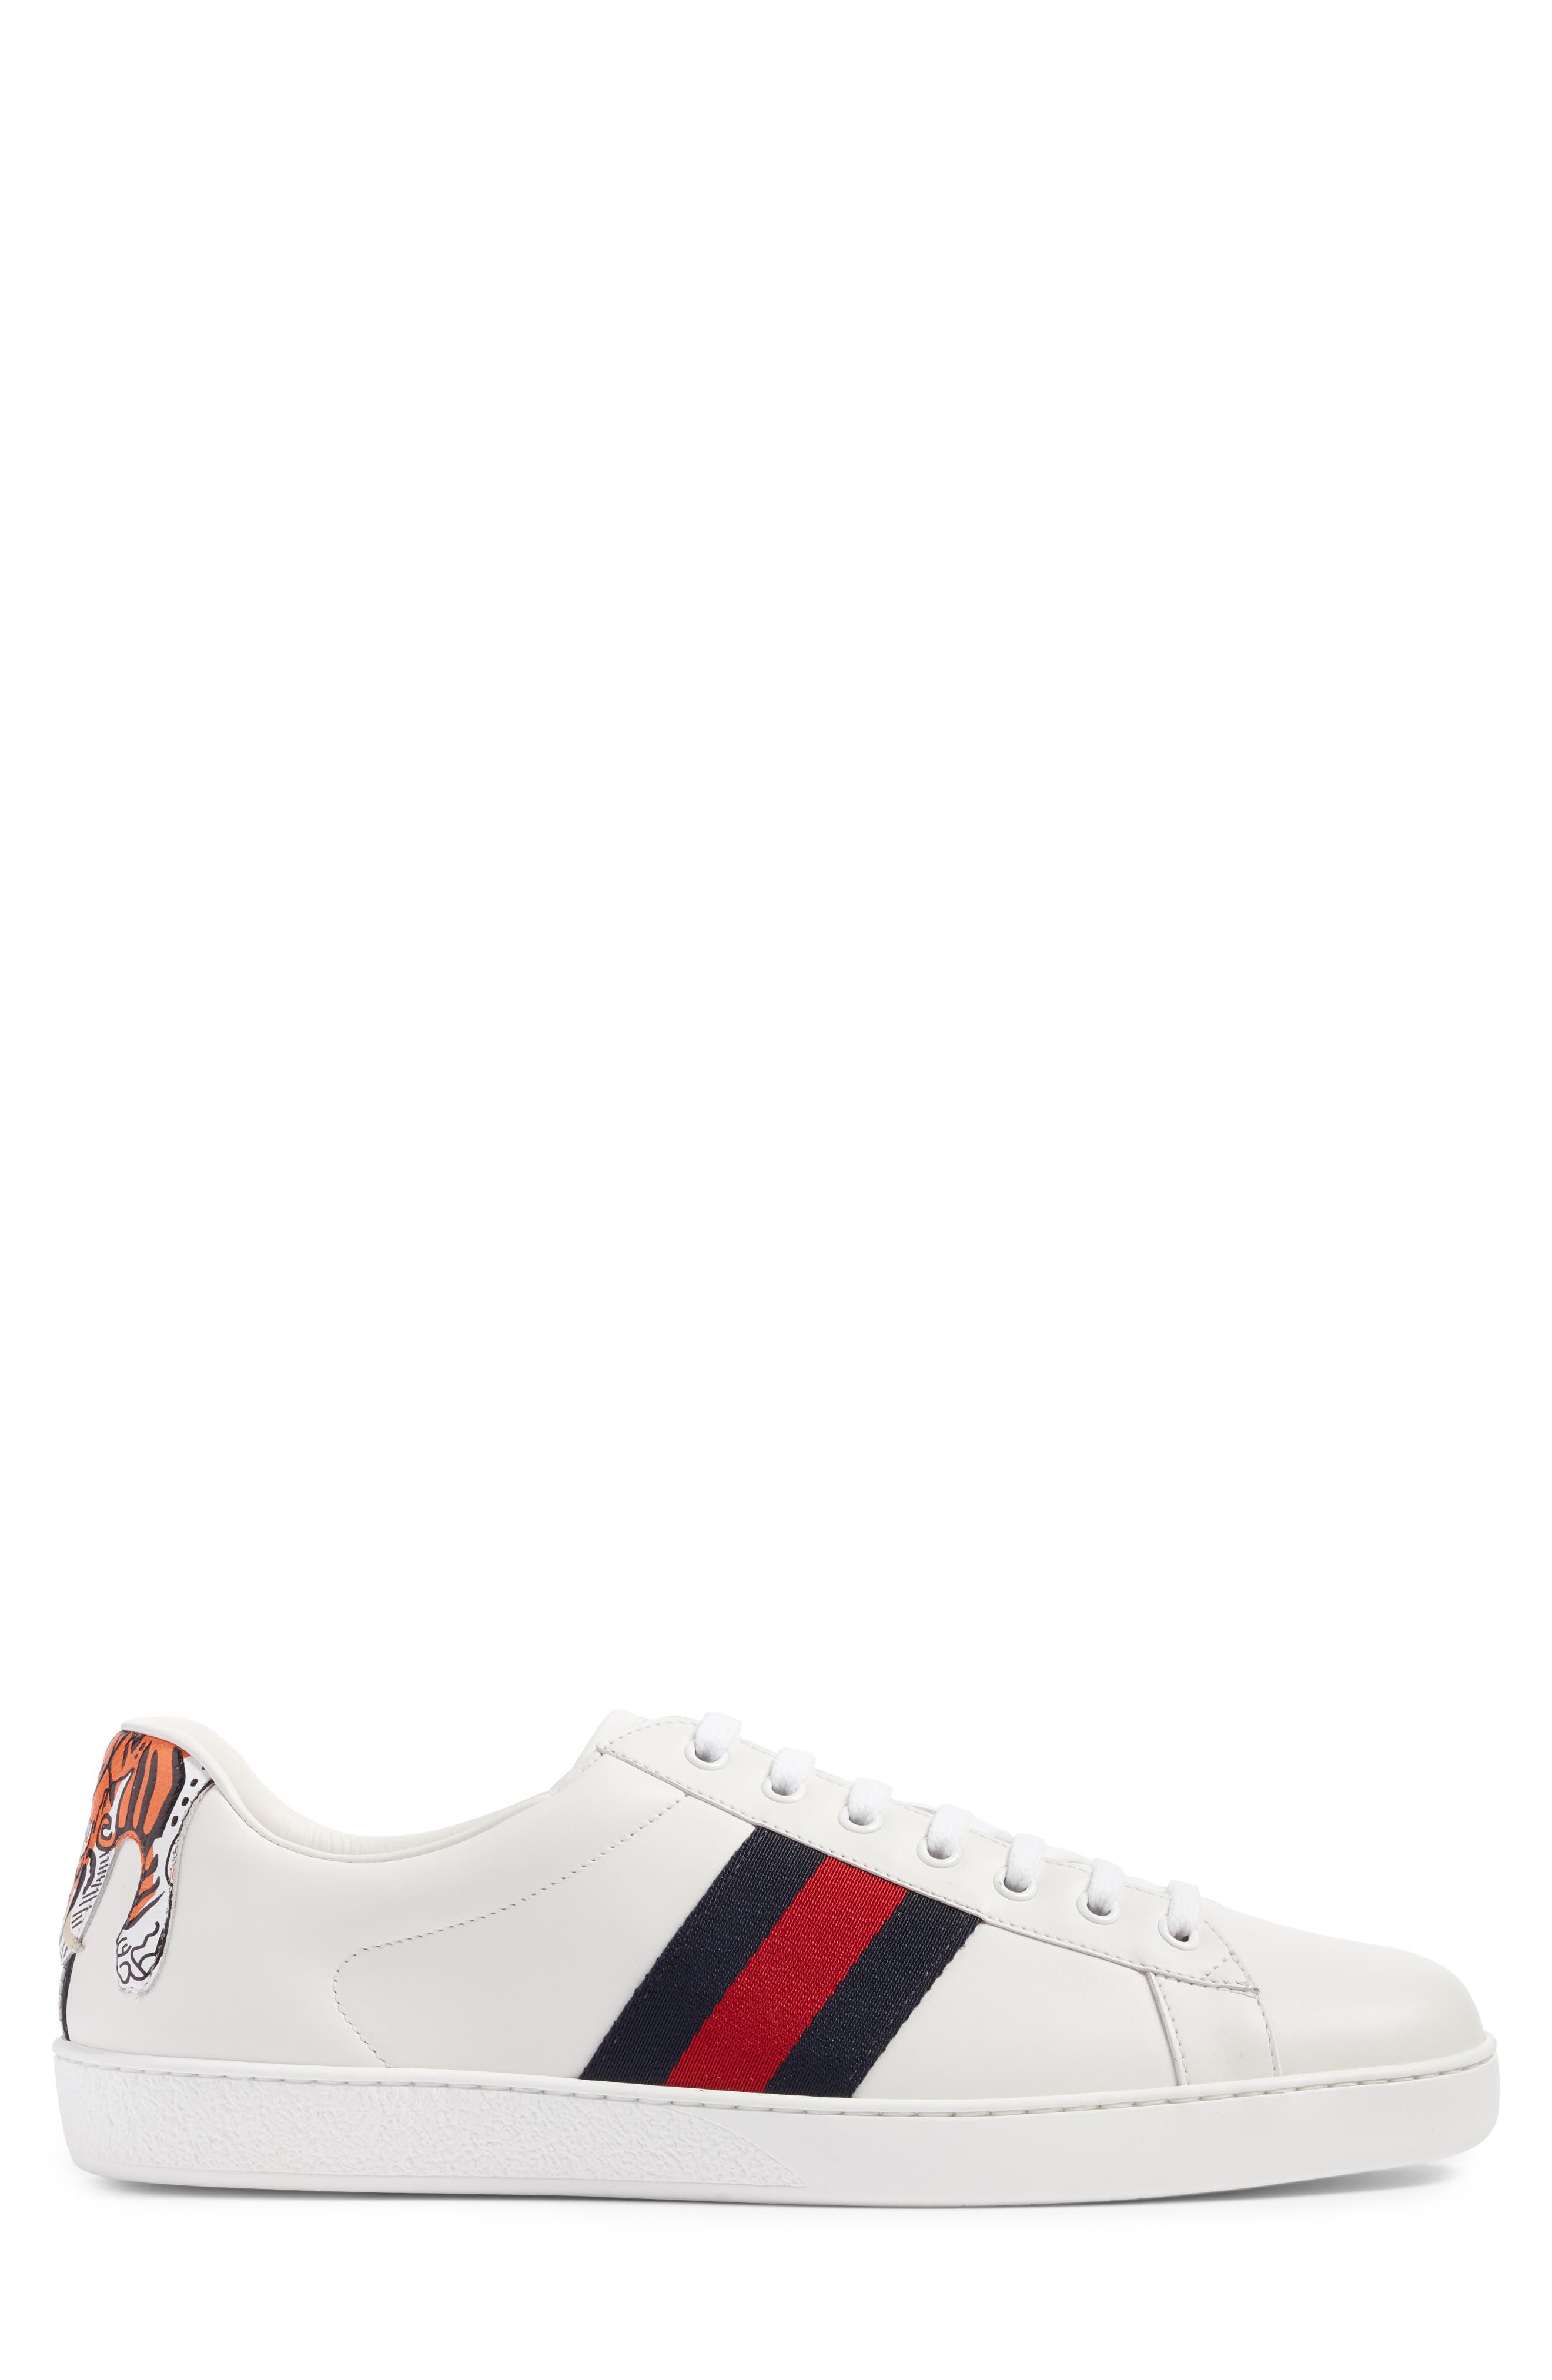 Alternate Image 3  - Gucci New Ace Tiger Sneaker (Men)